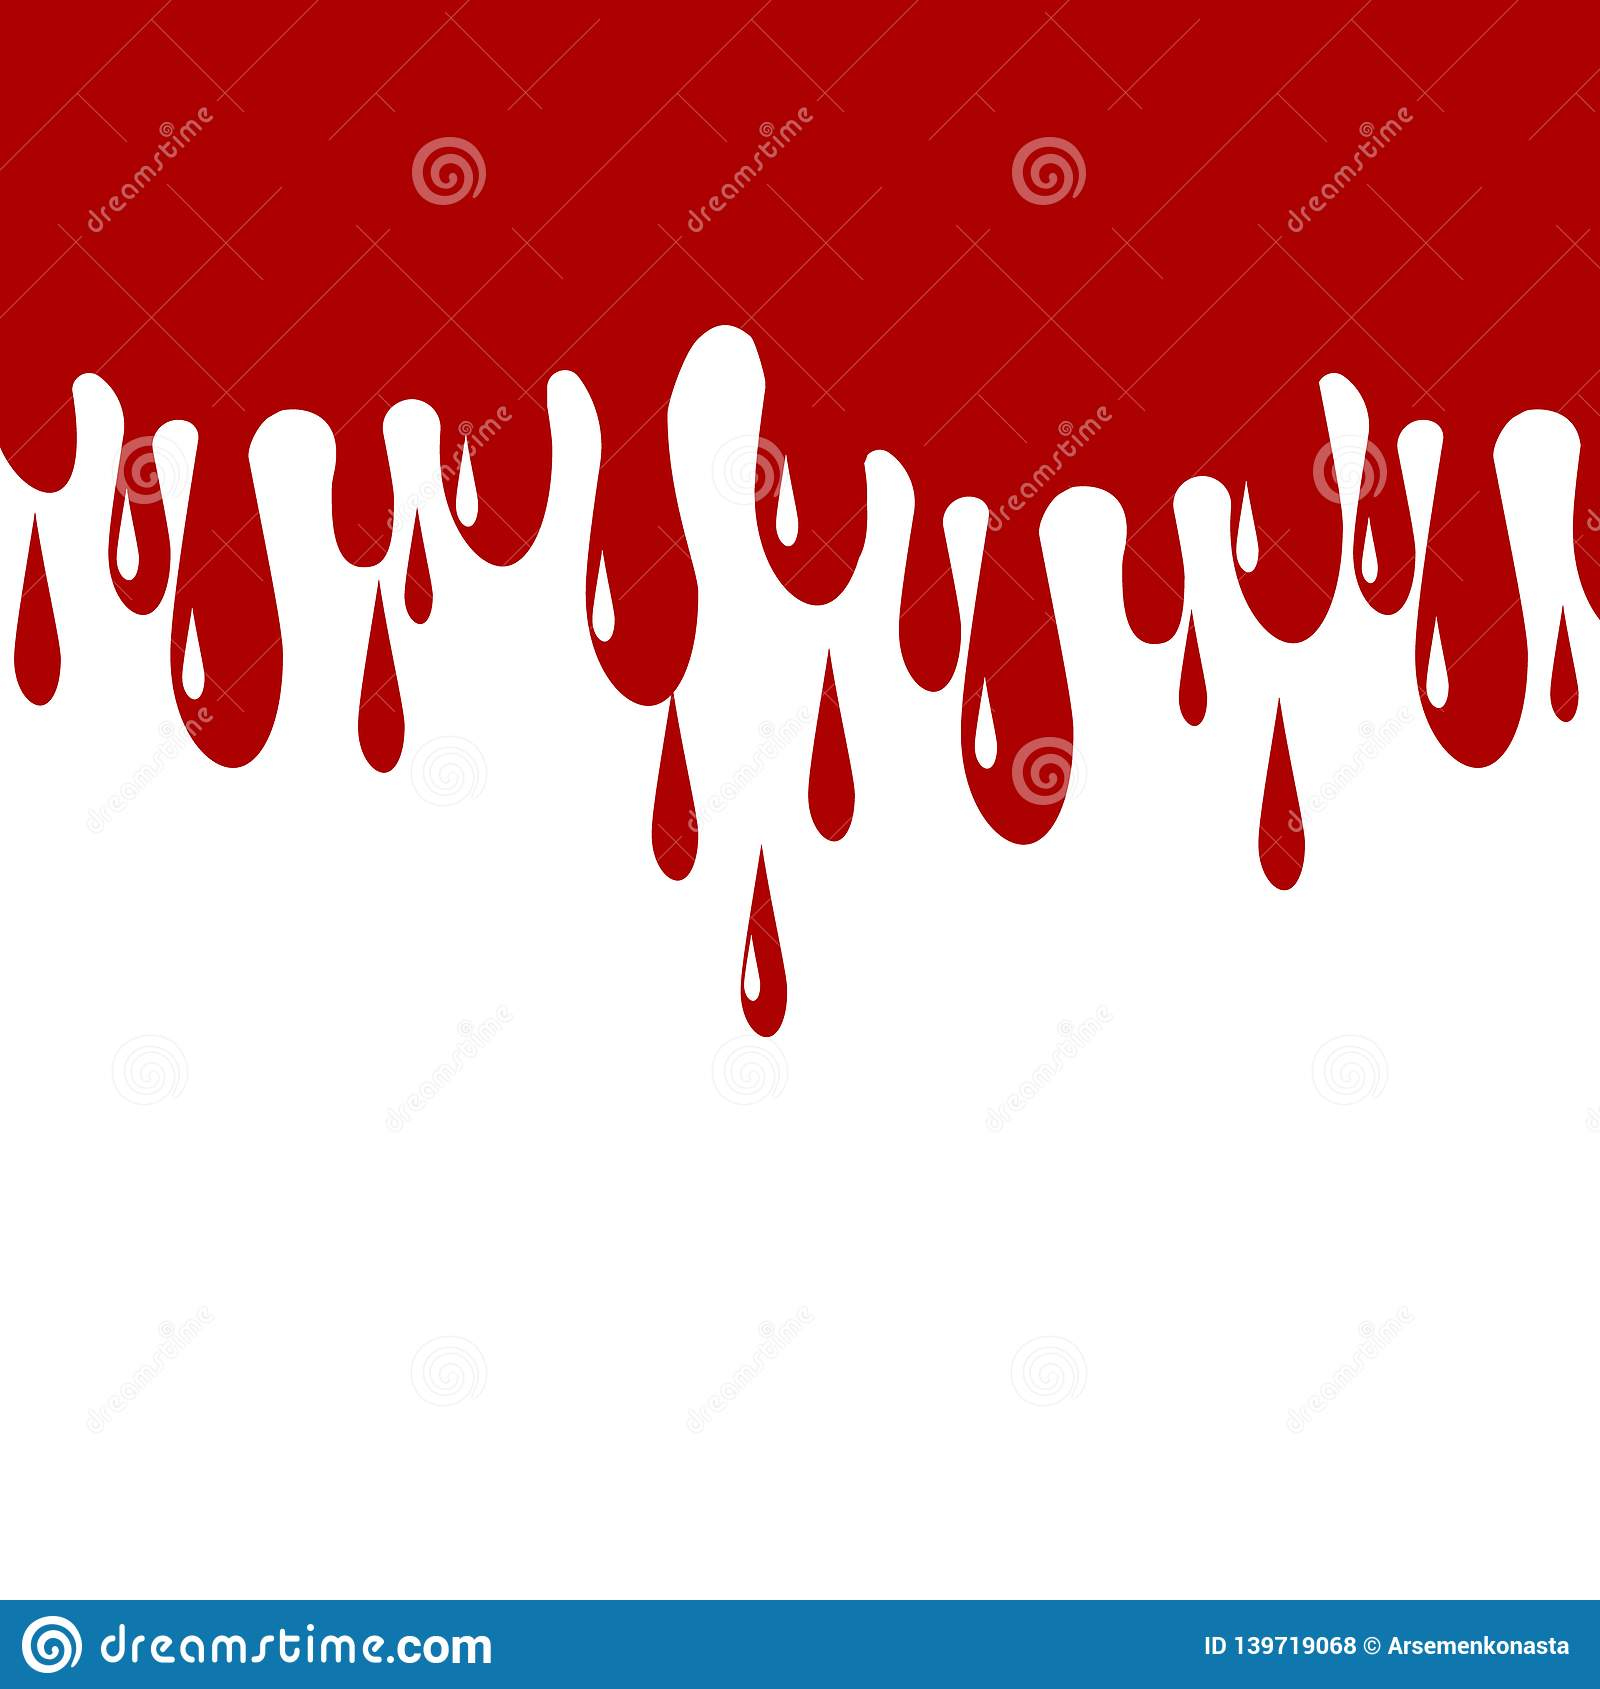 hight resolution of red color paint dripping blood drips vector illustration